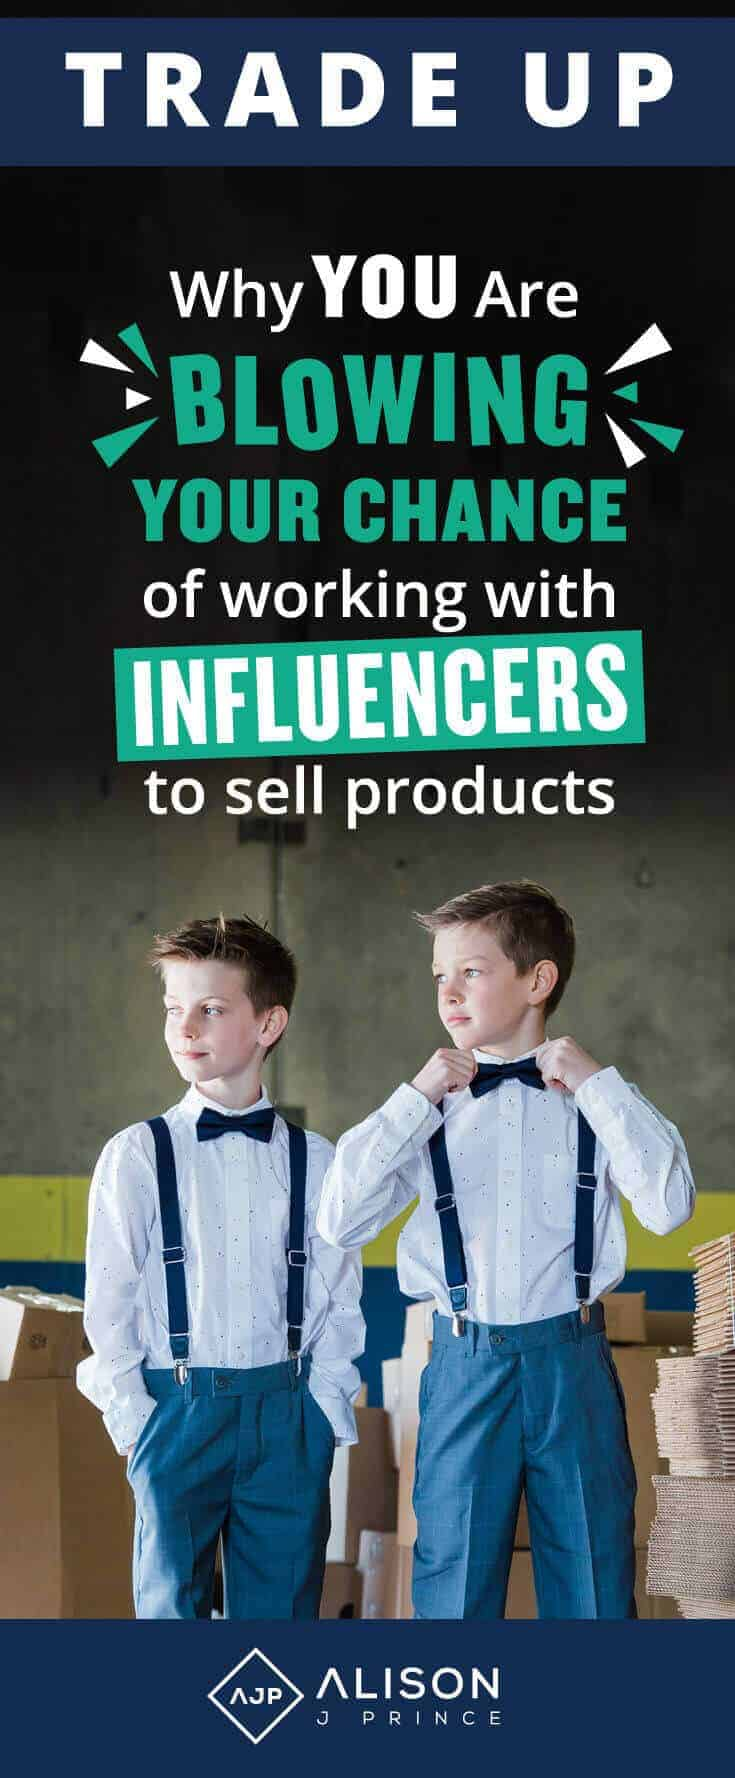 Working with Influencers for your commerce business - learn to trade up